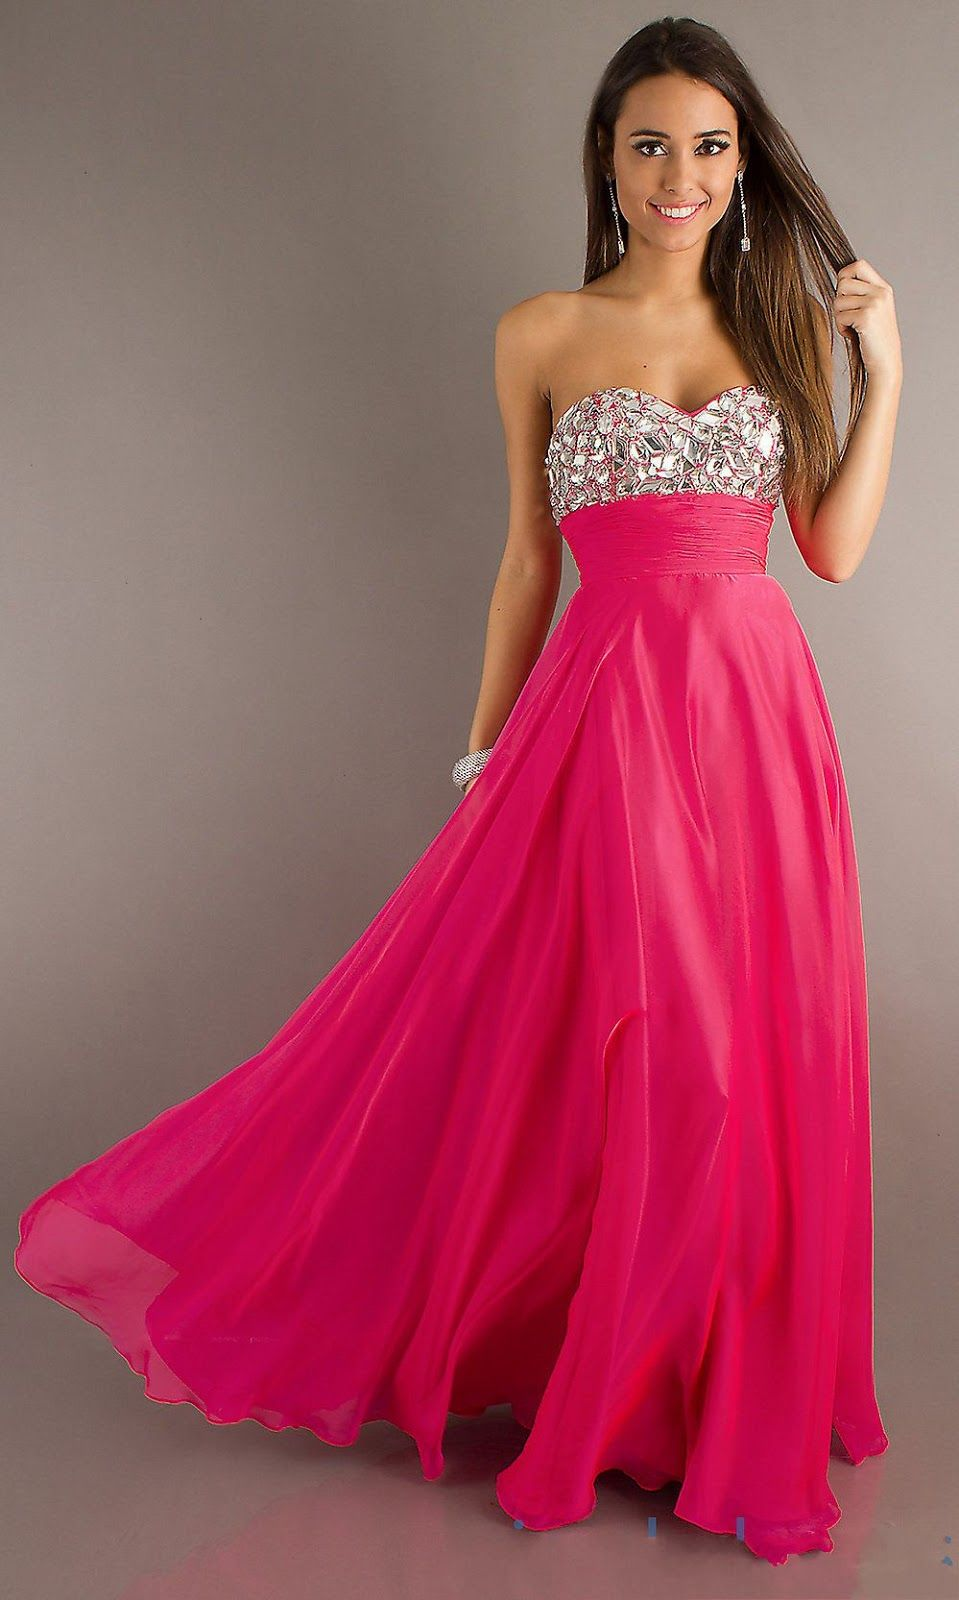 pretty dresses for prom - Google Search | Ideas for my prom dress ...